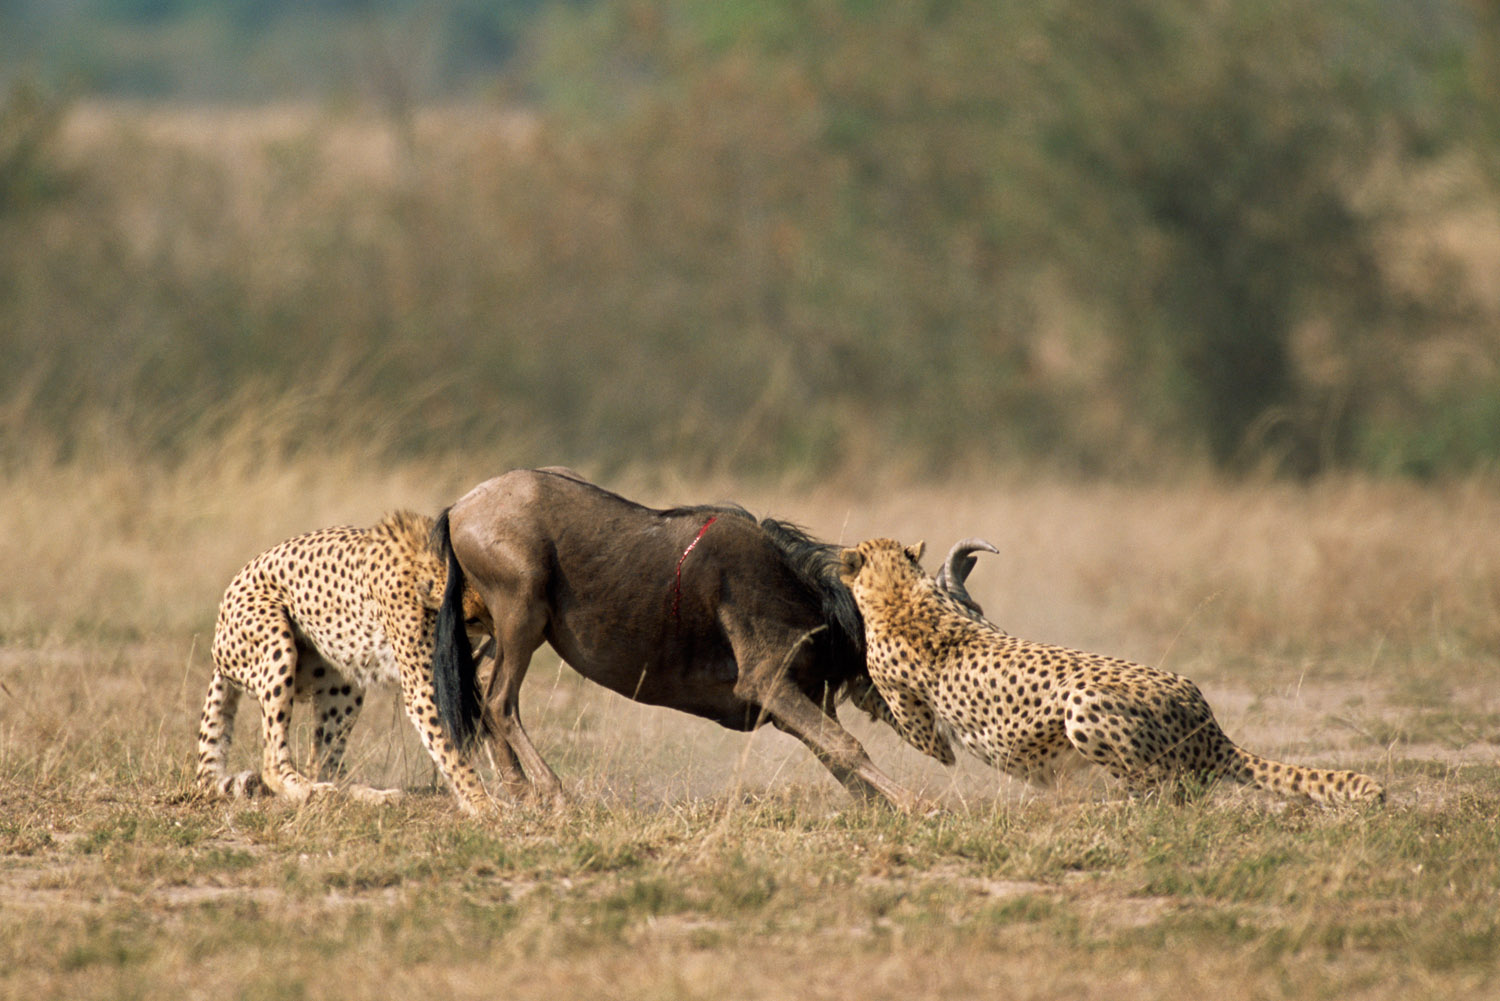 Cheetahs bringing down wildebeest calf, Masai Mara National Reserve, Kenya